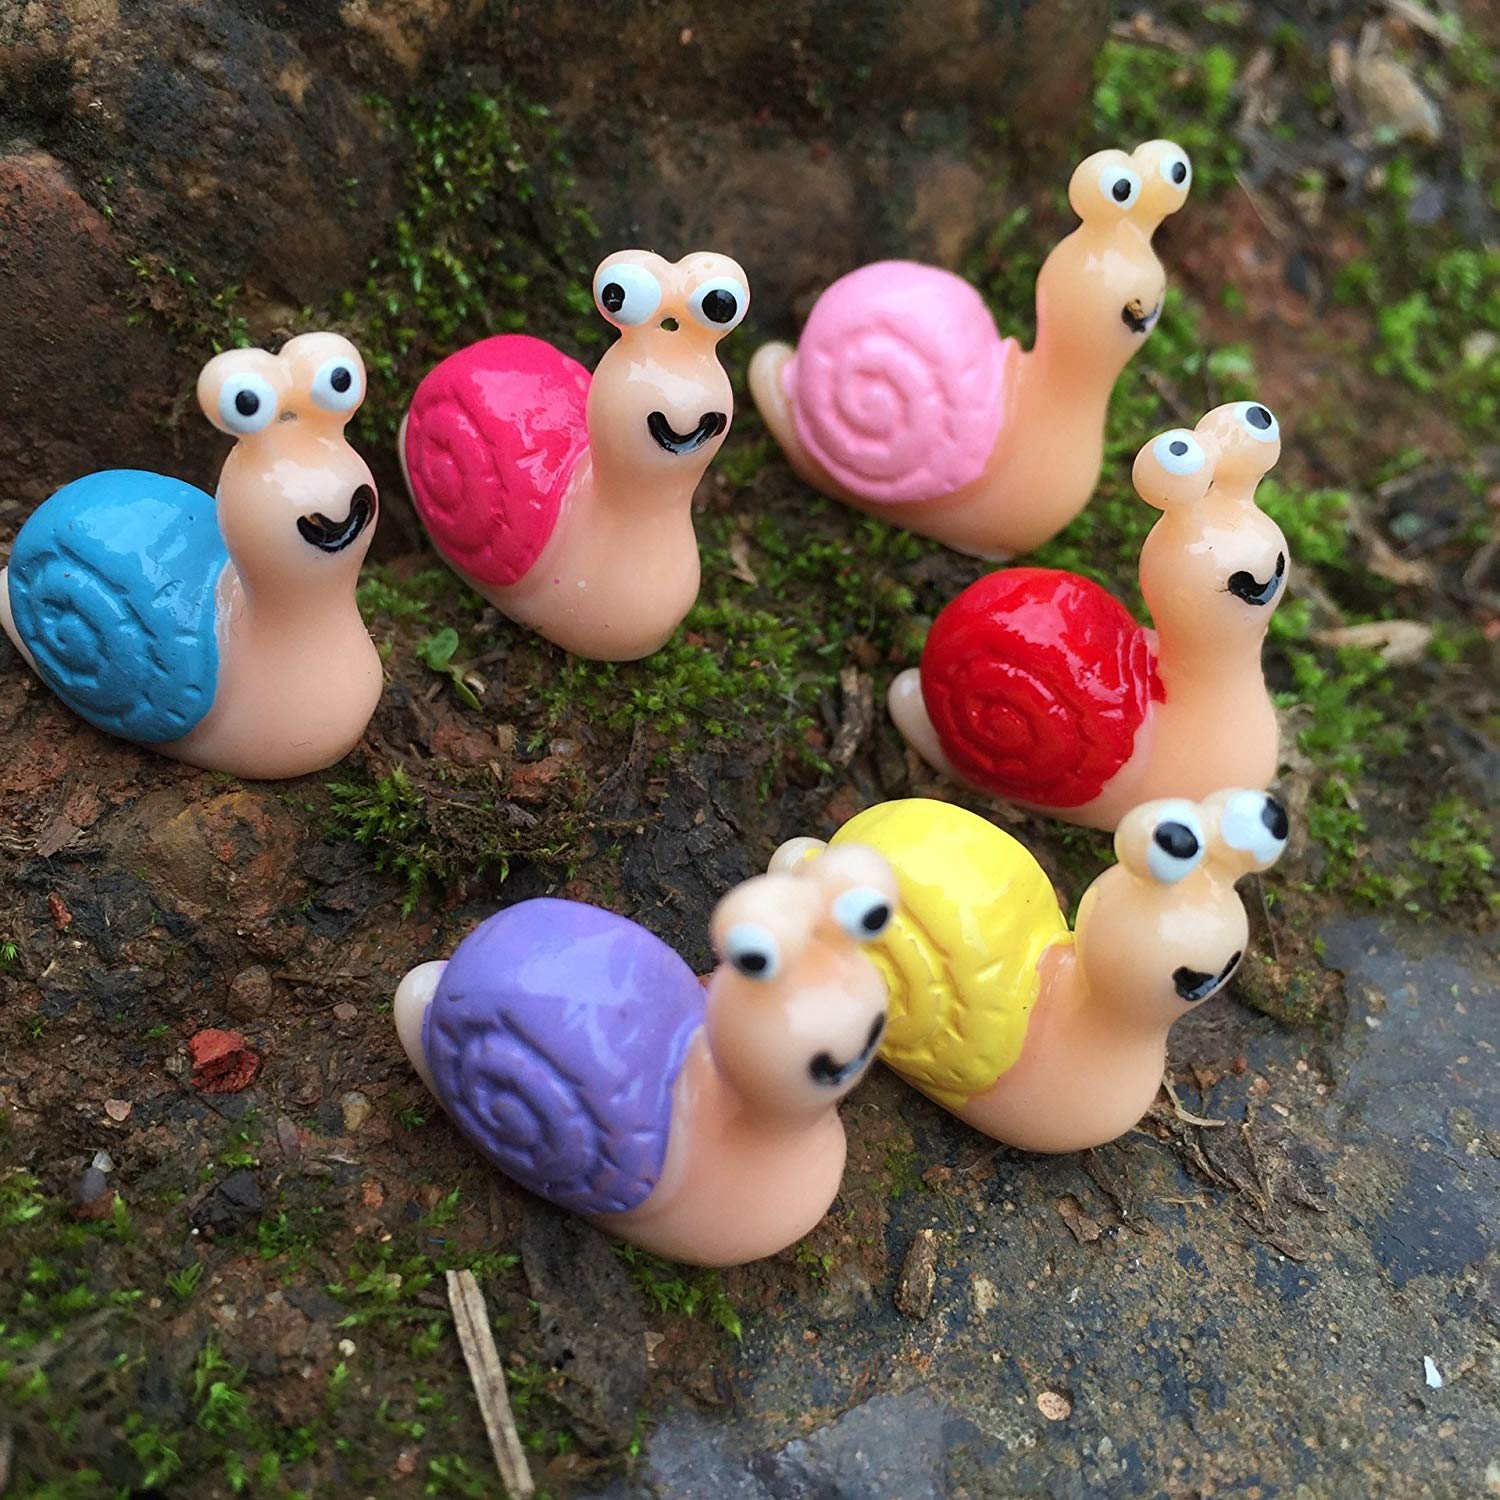 6 Pcs Snail Resin Crafts, Miniature Fairy Garden Ornament Outdoor Decor Home Decoration, Baby Shower Favor Table Scattering